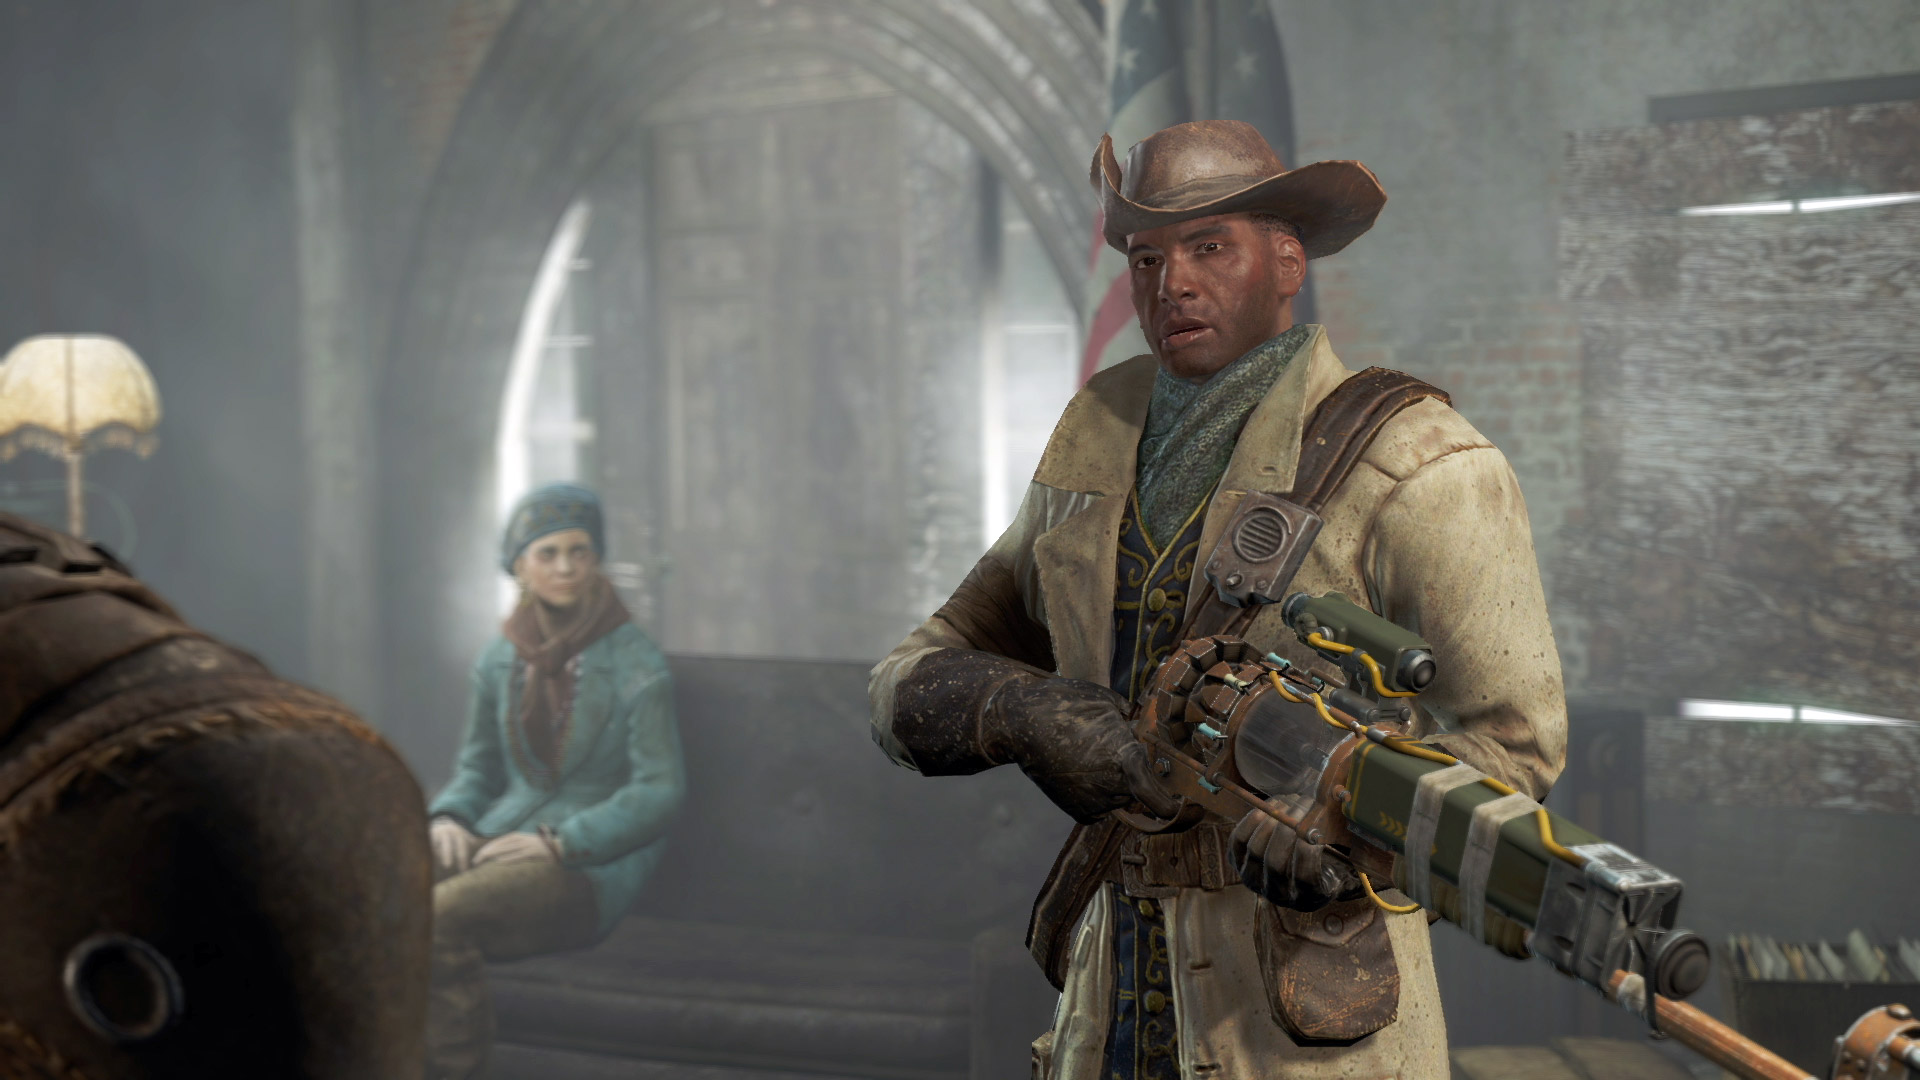 Fallout 4's script dwarfs Skyrim and Fallout 3's combined